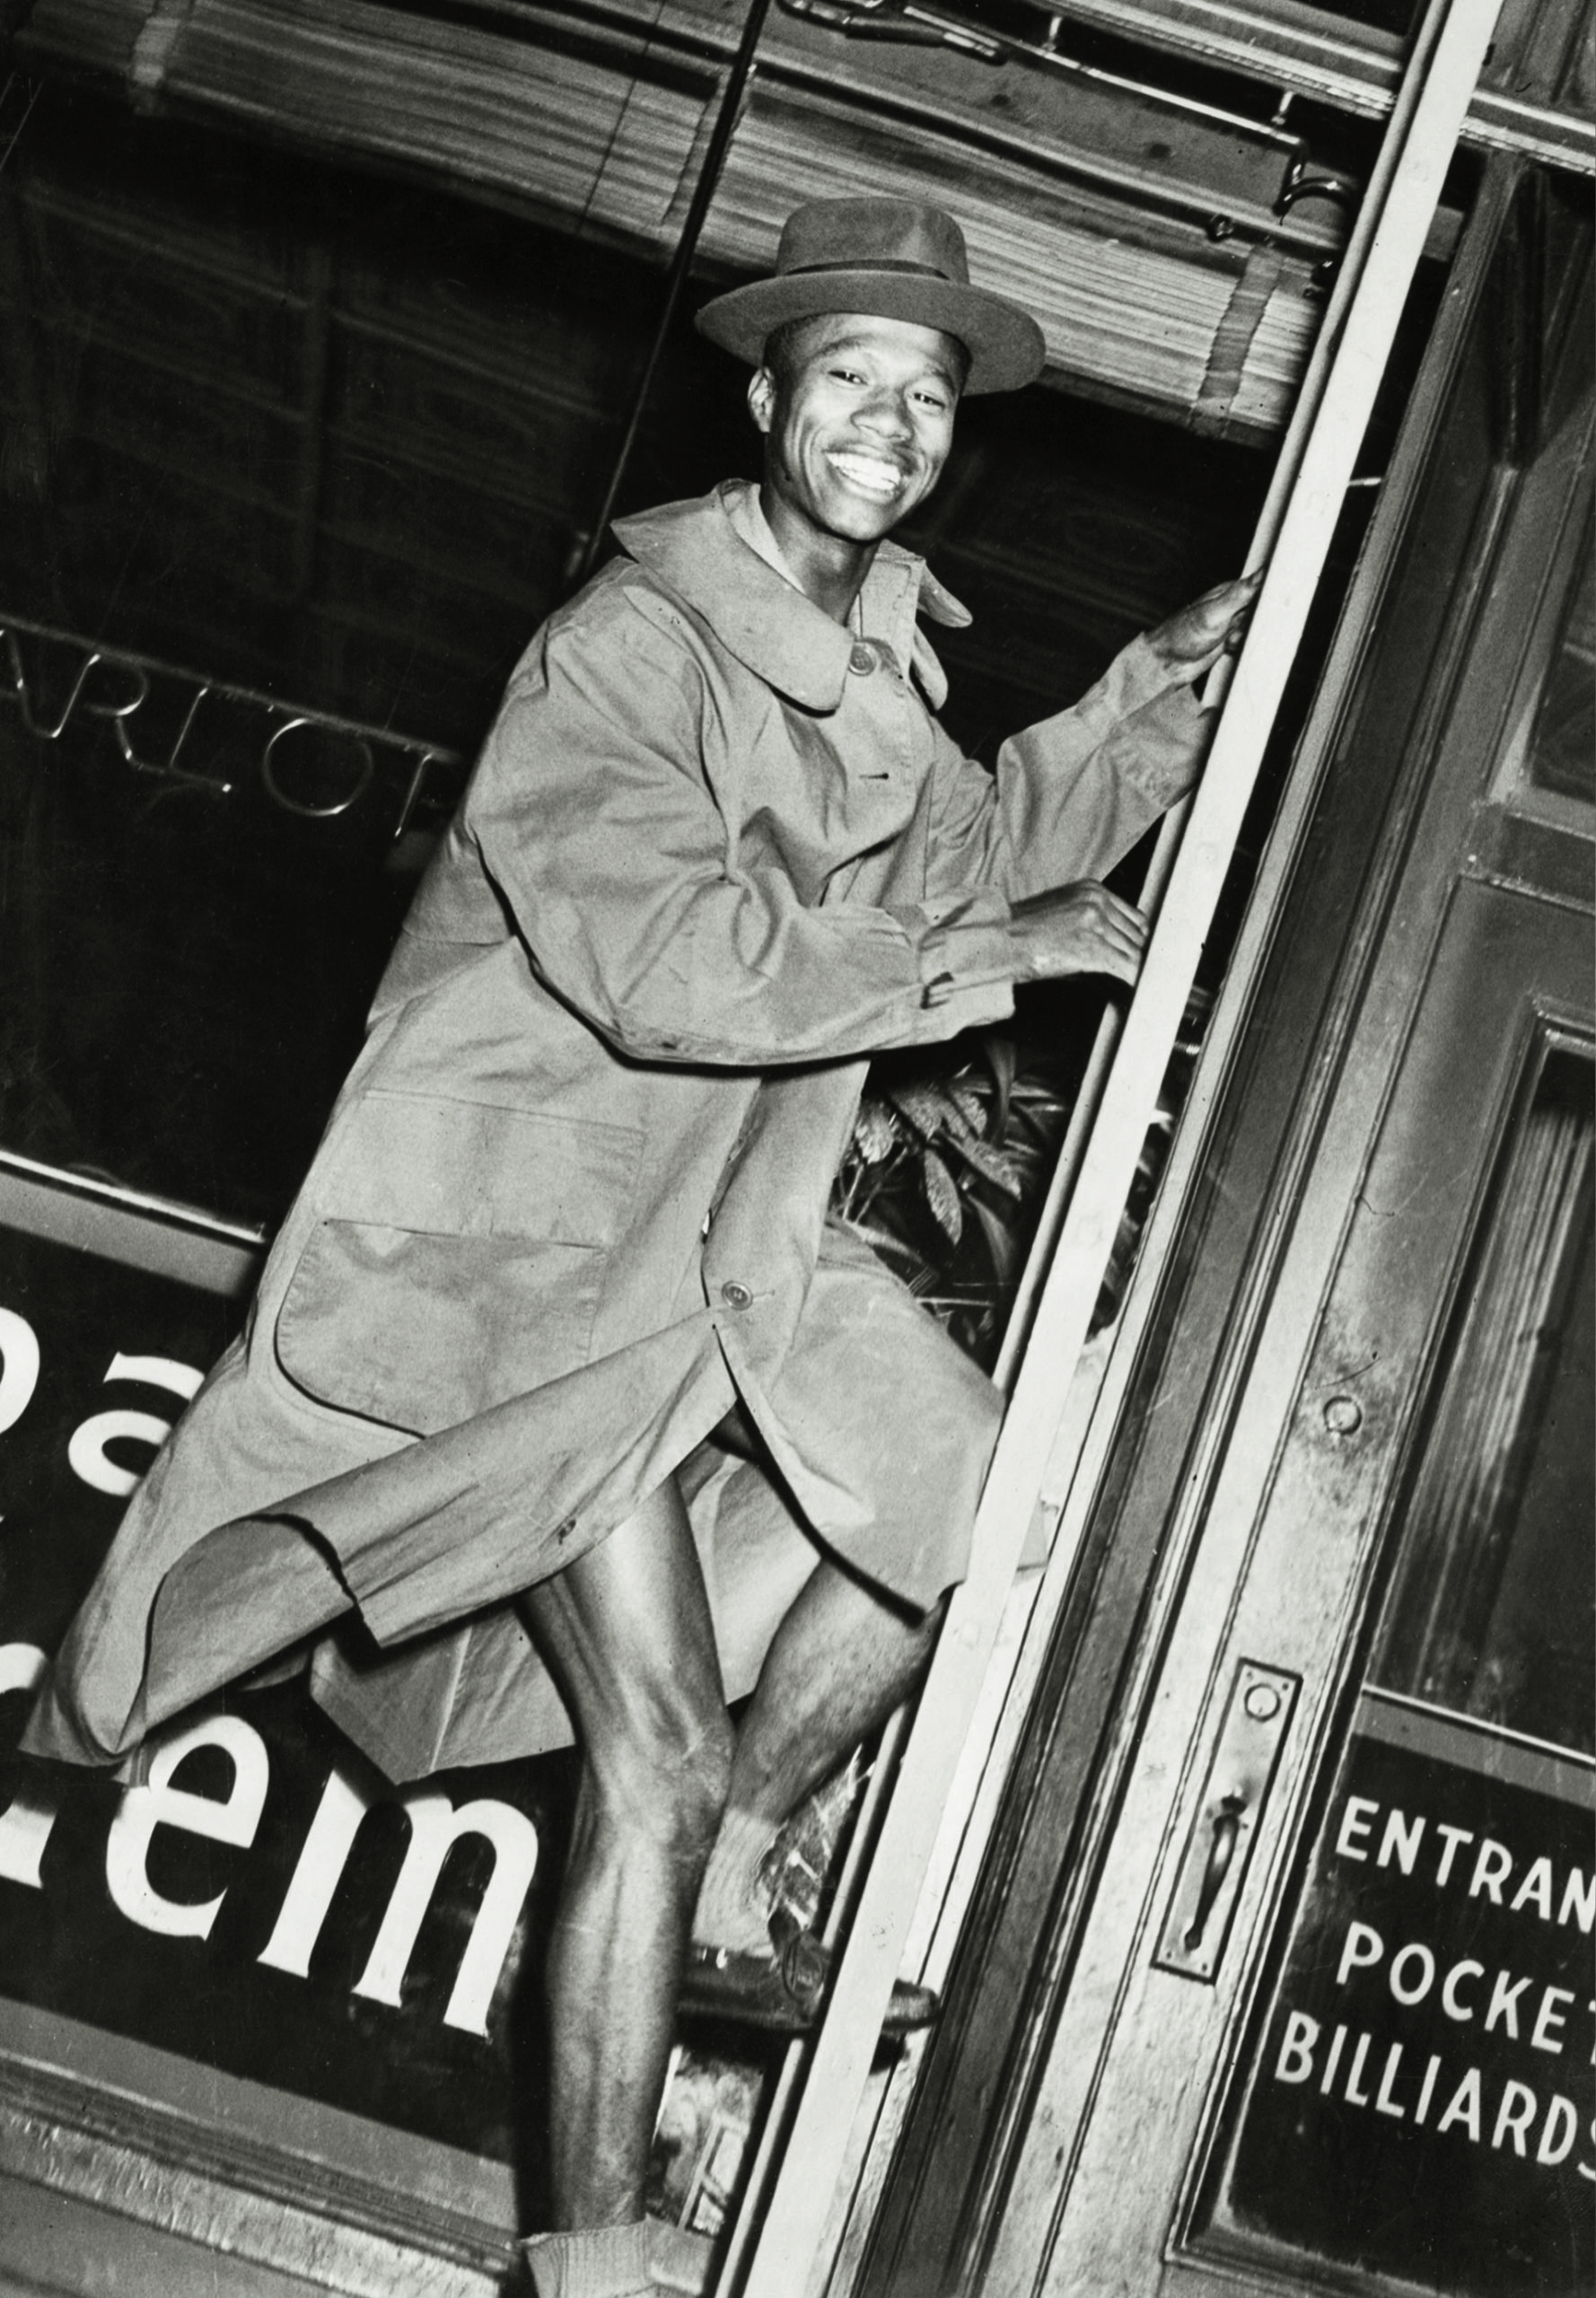 From Weegee's Naked City, first published 1945